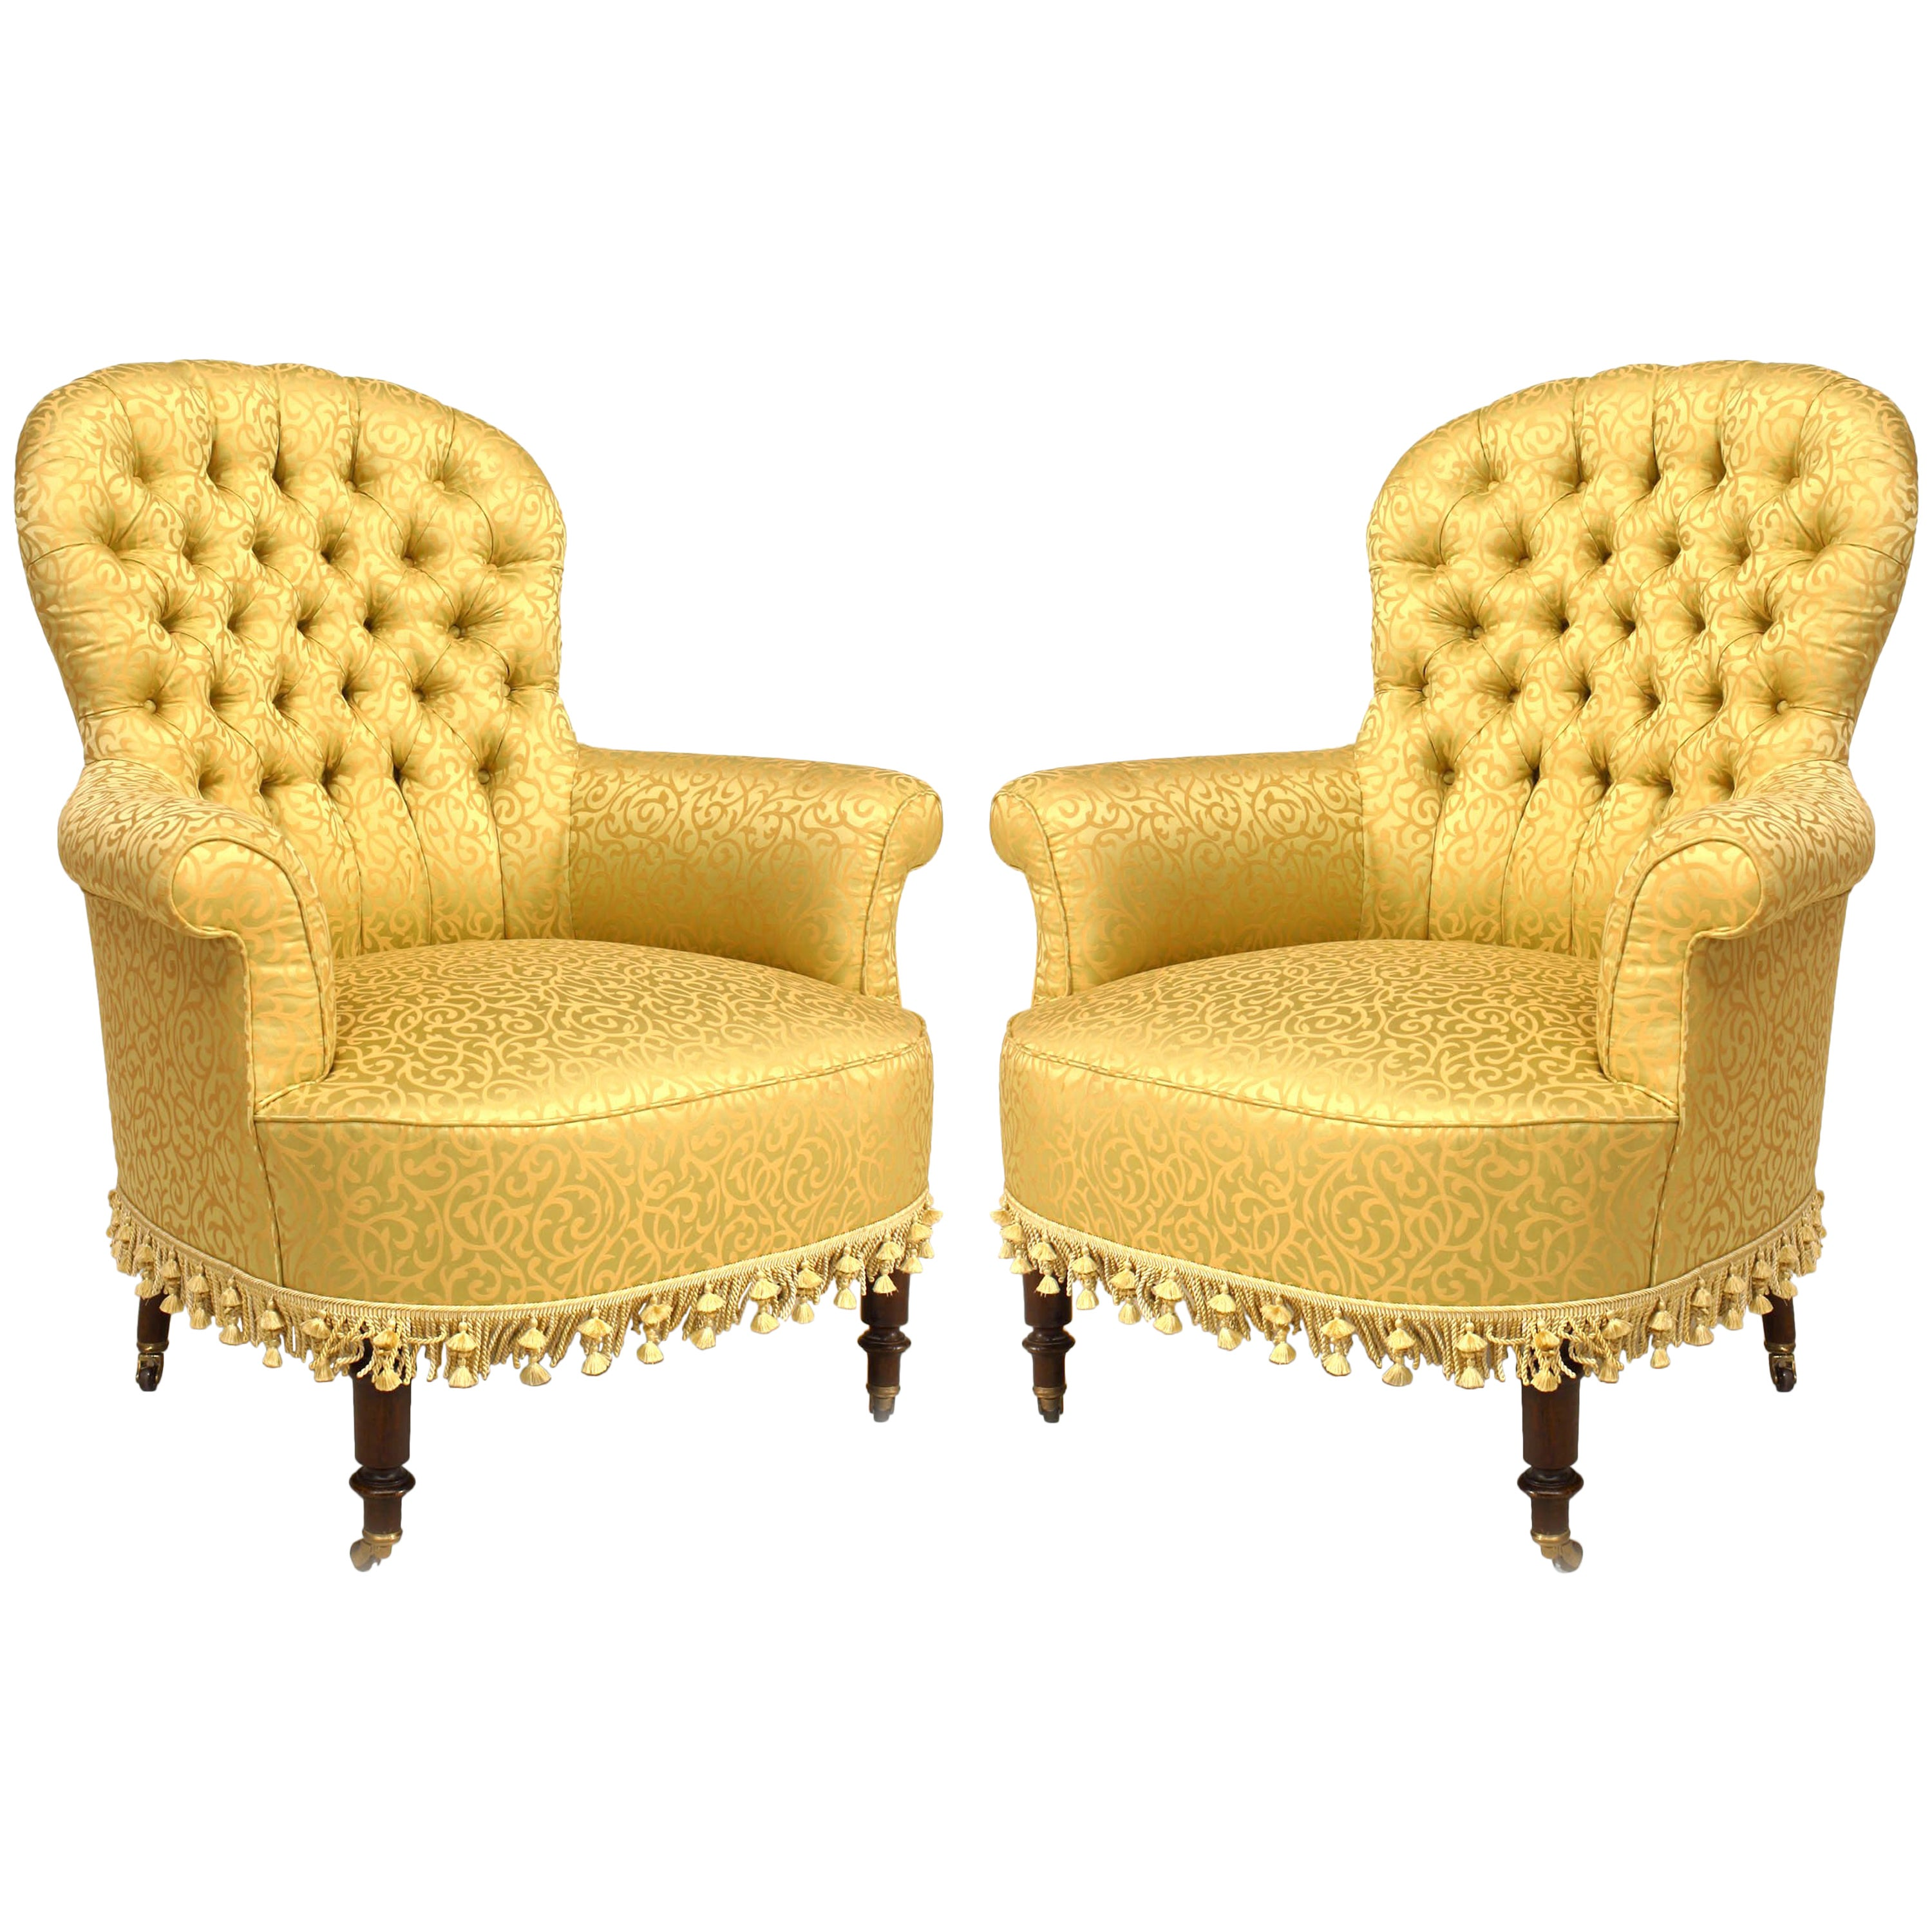 Tub Chairs Pair Of American Victorian Style 20th Century Gilt Tub Chairs